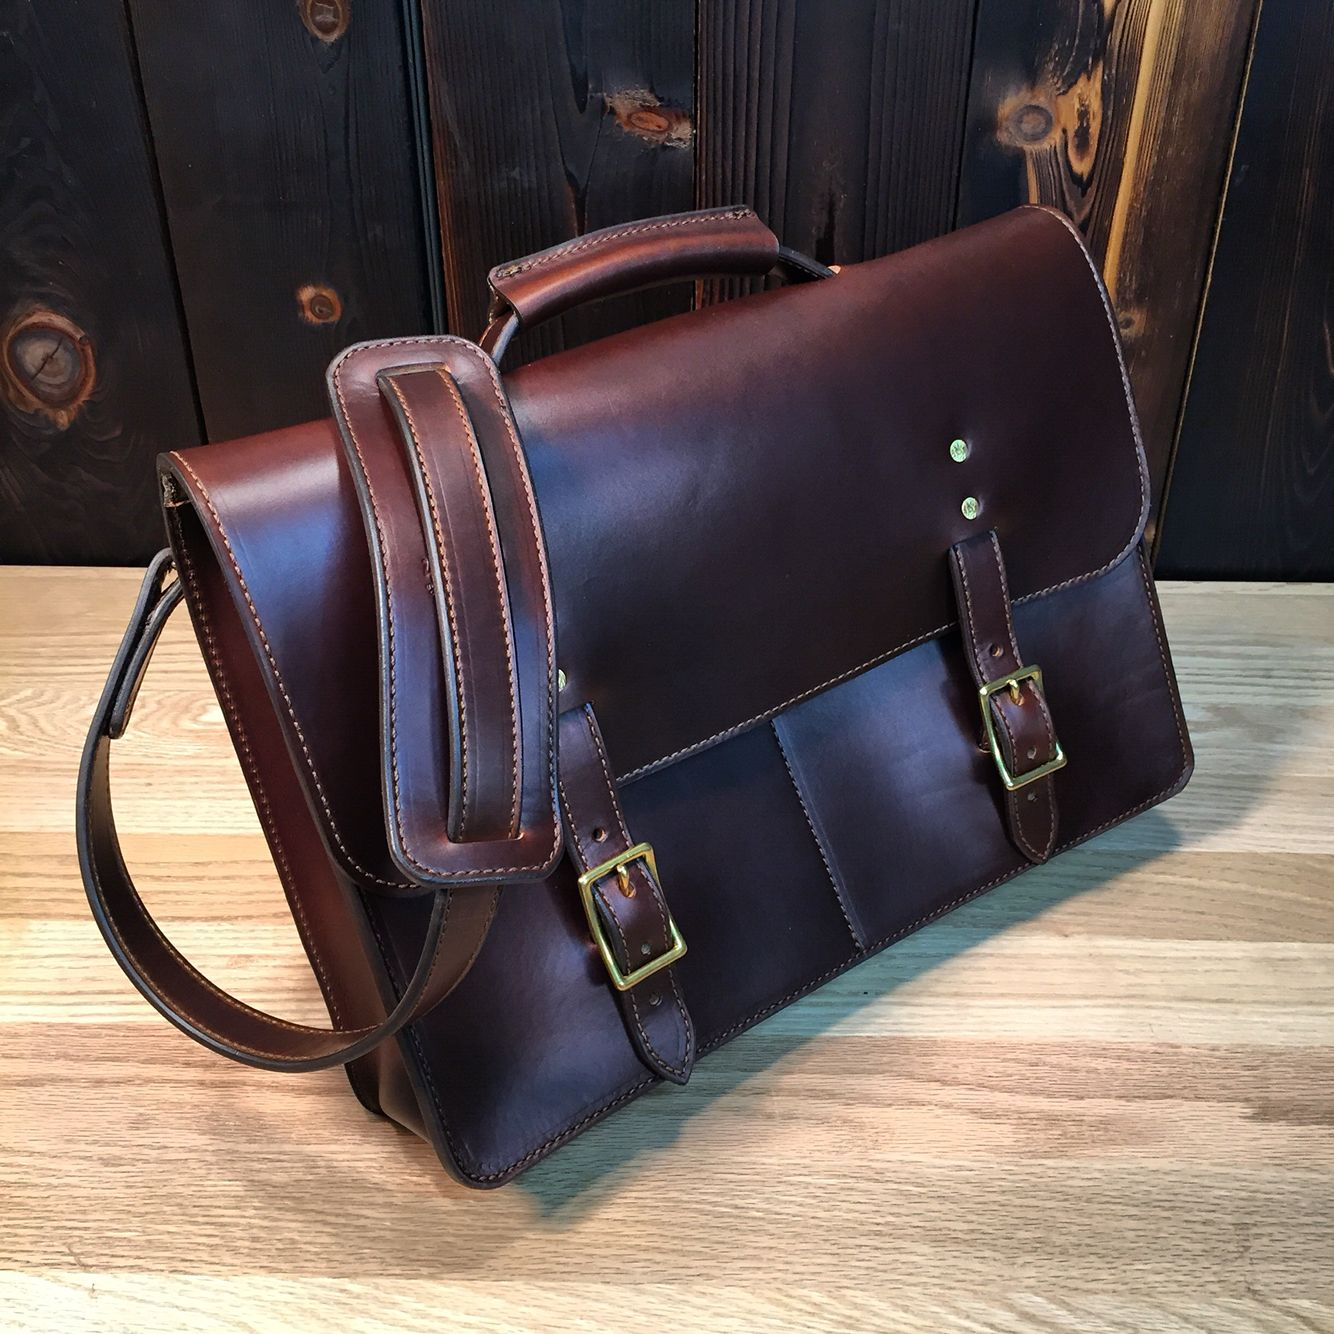 610228de707a The Odin Satchel from www.OdinLeatherGoods.com Handmade with brown Horween  Chromexcel leather and solid brass hardware.  450